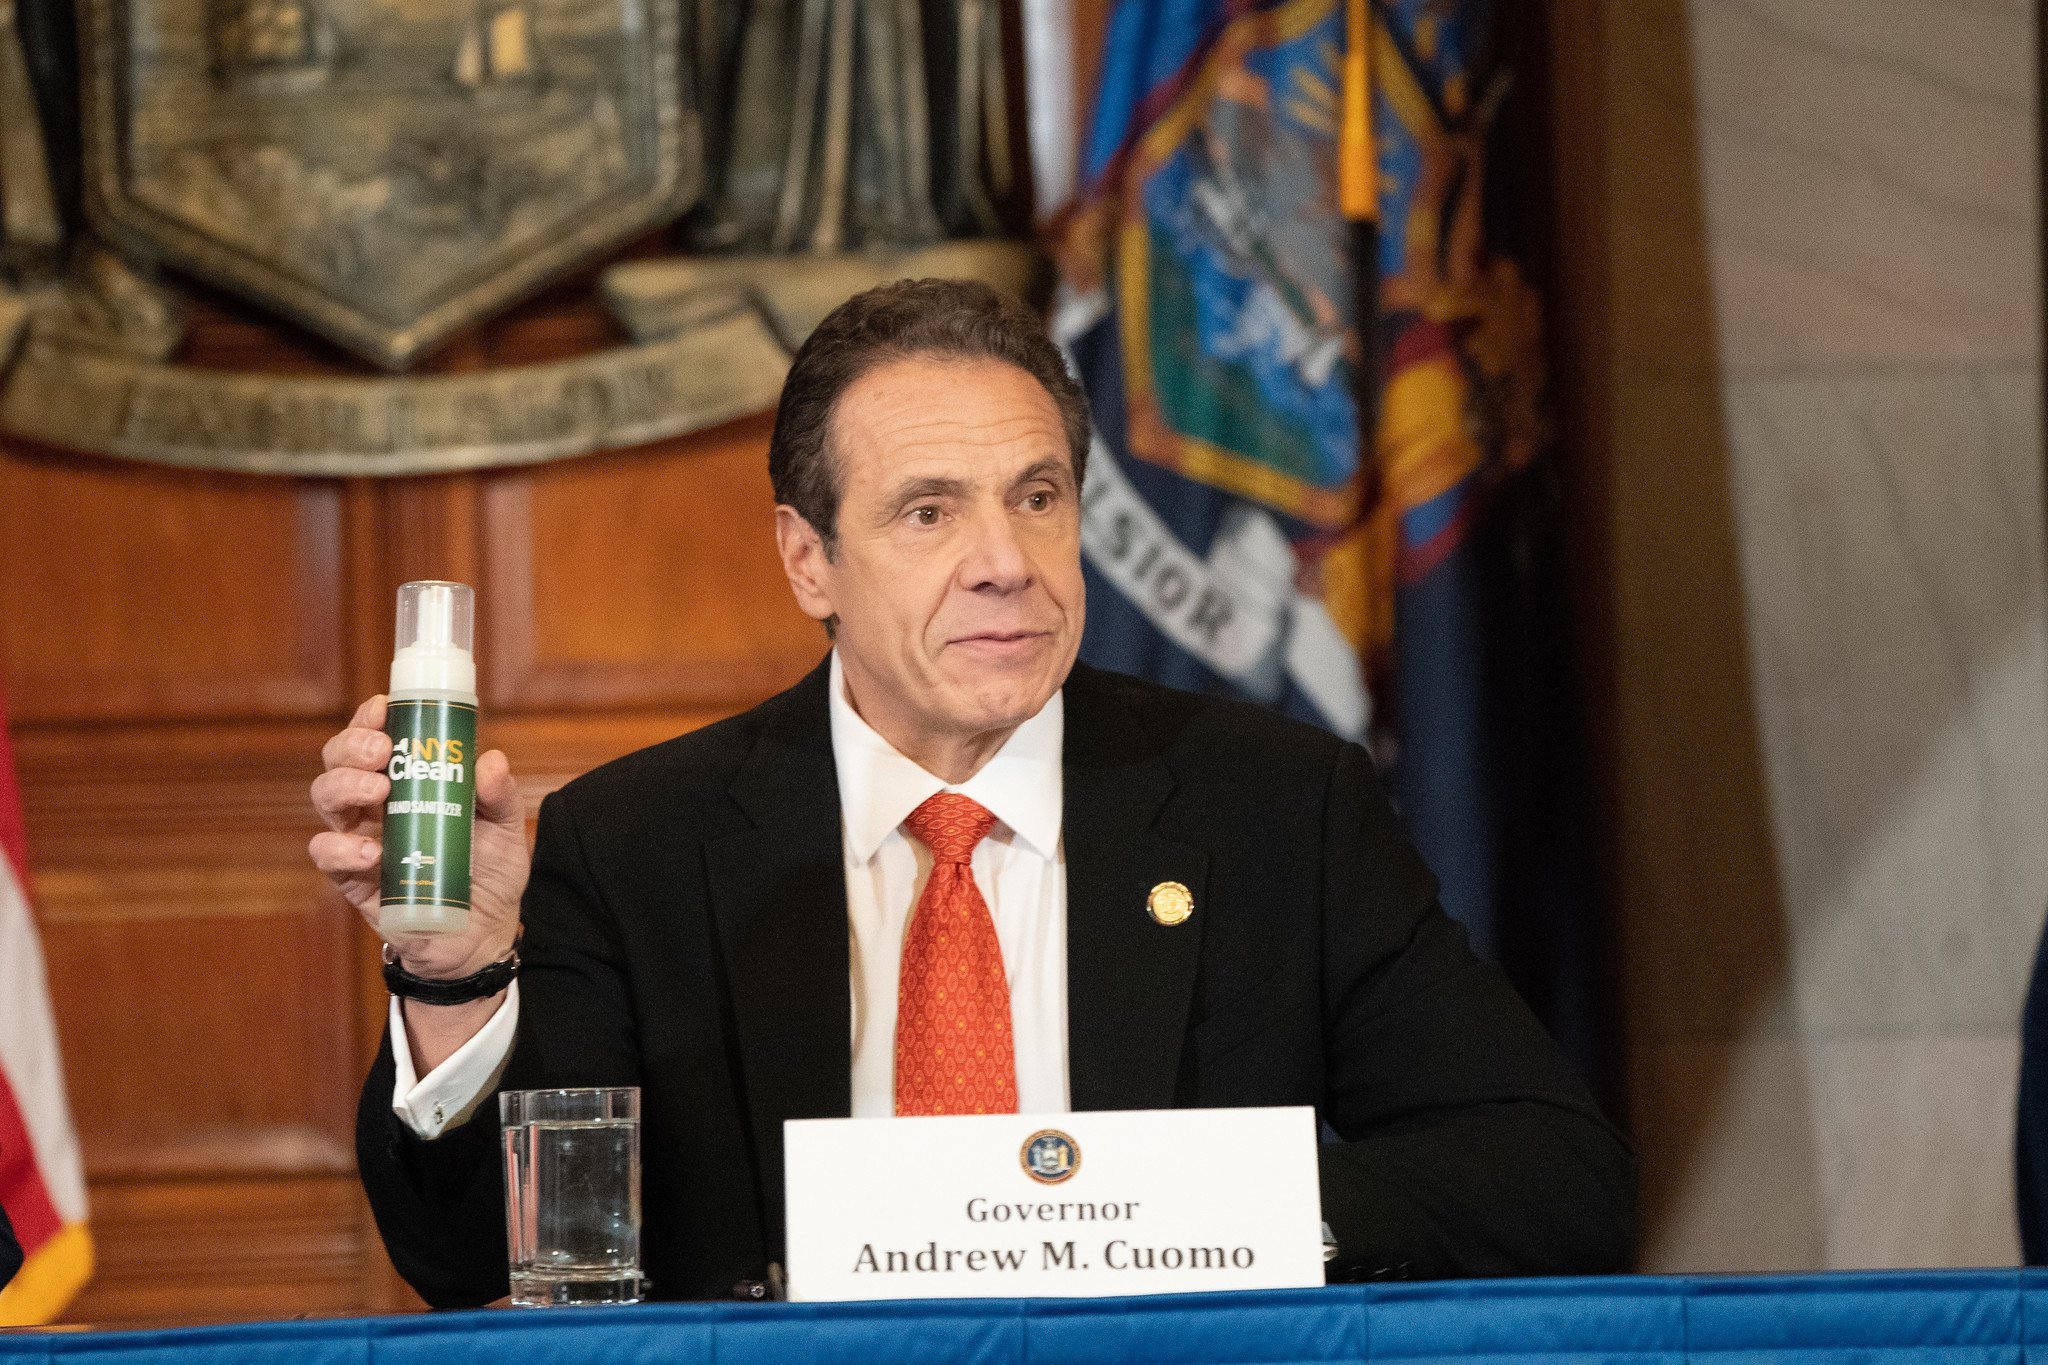 New York State Clean, New York Hand Sanitizer, Cuomo hand sanitizer